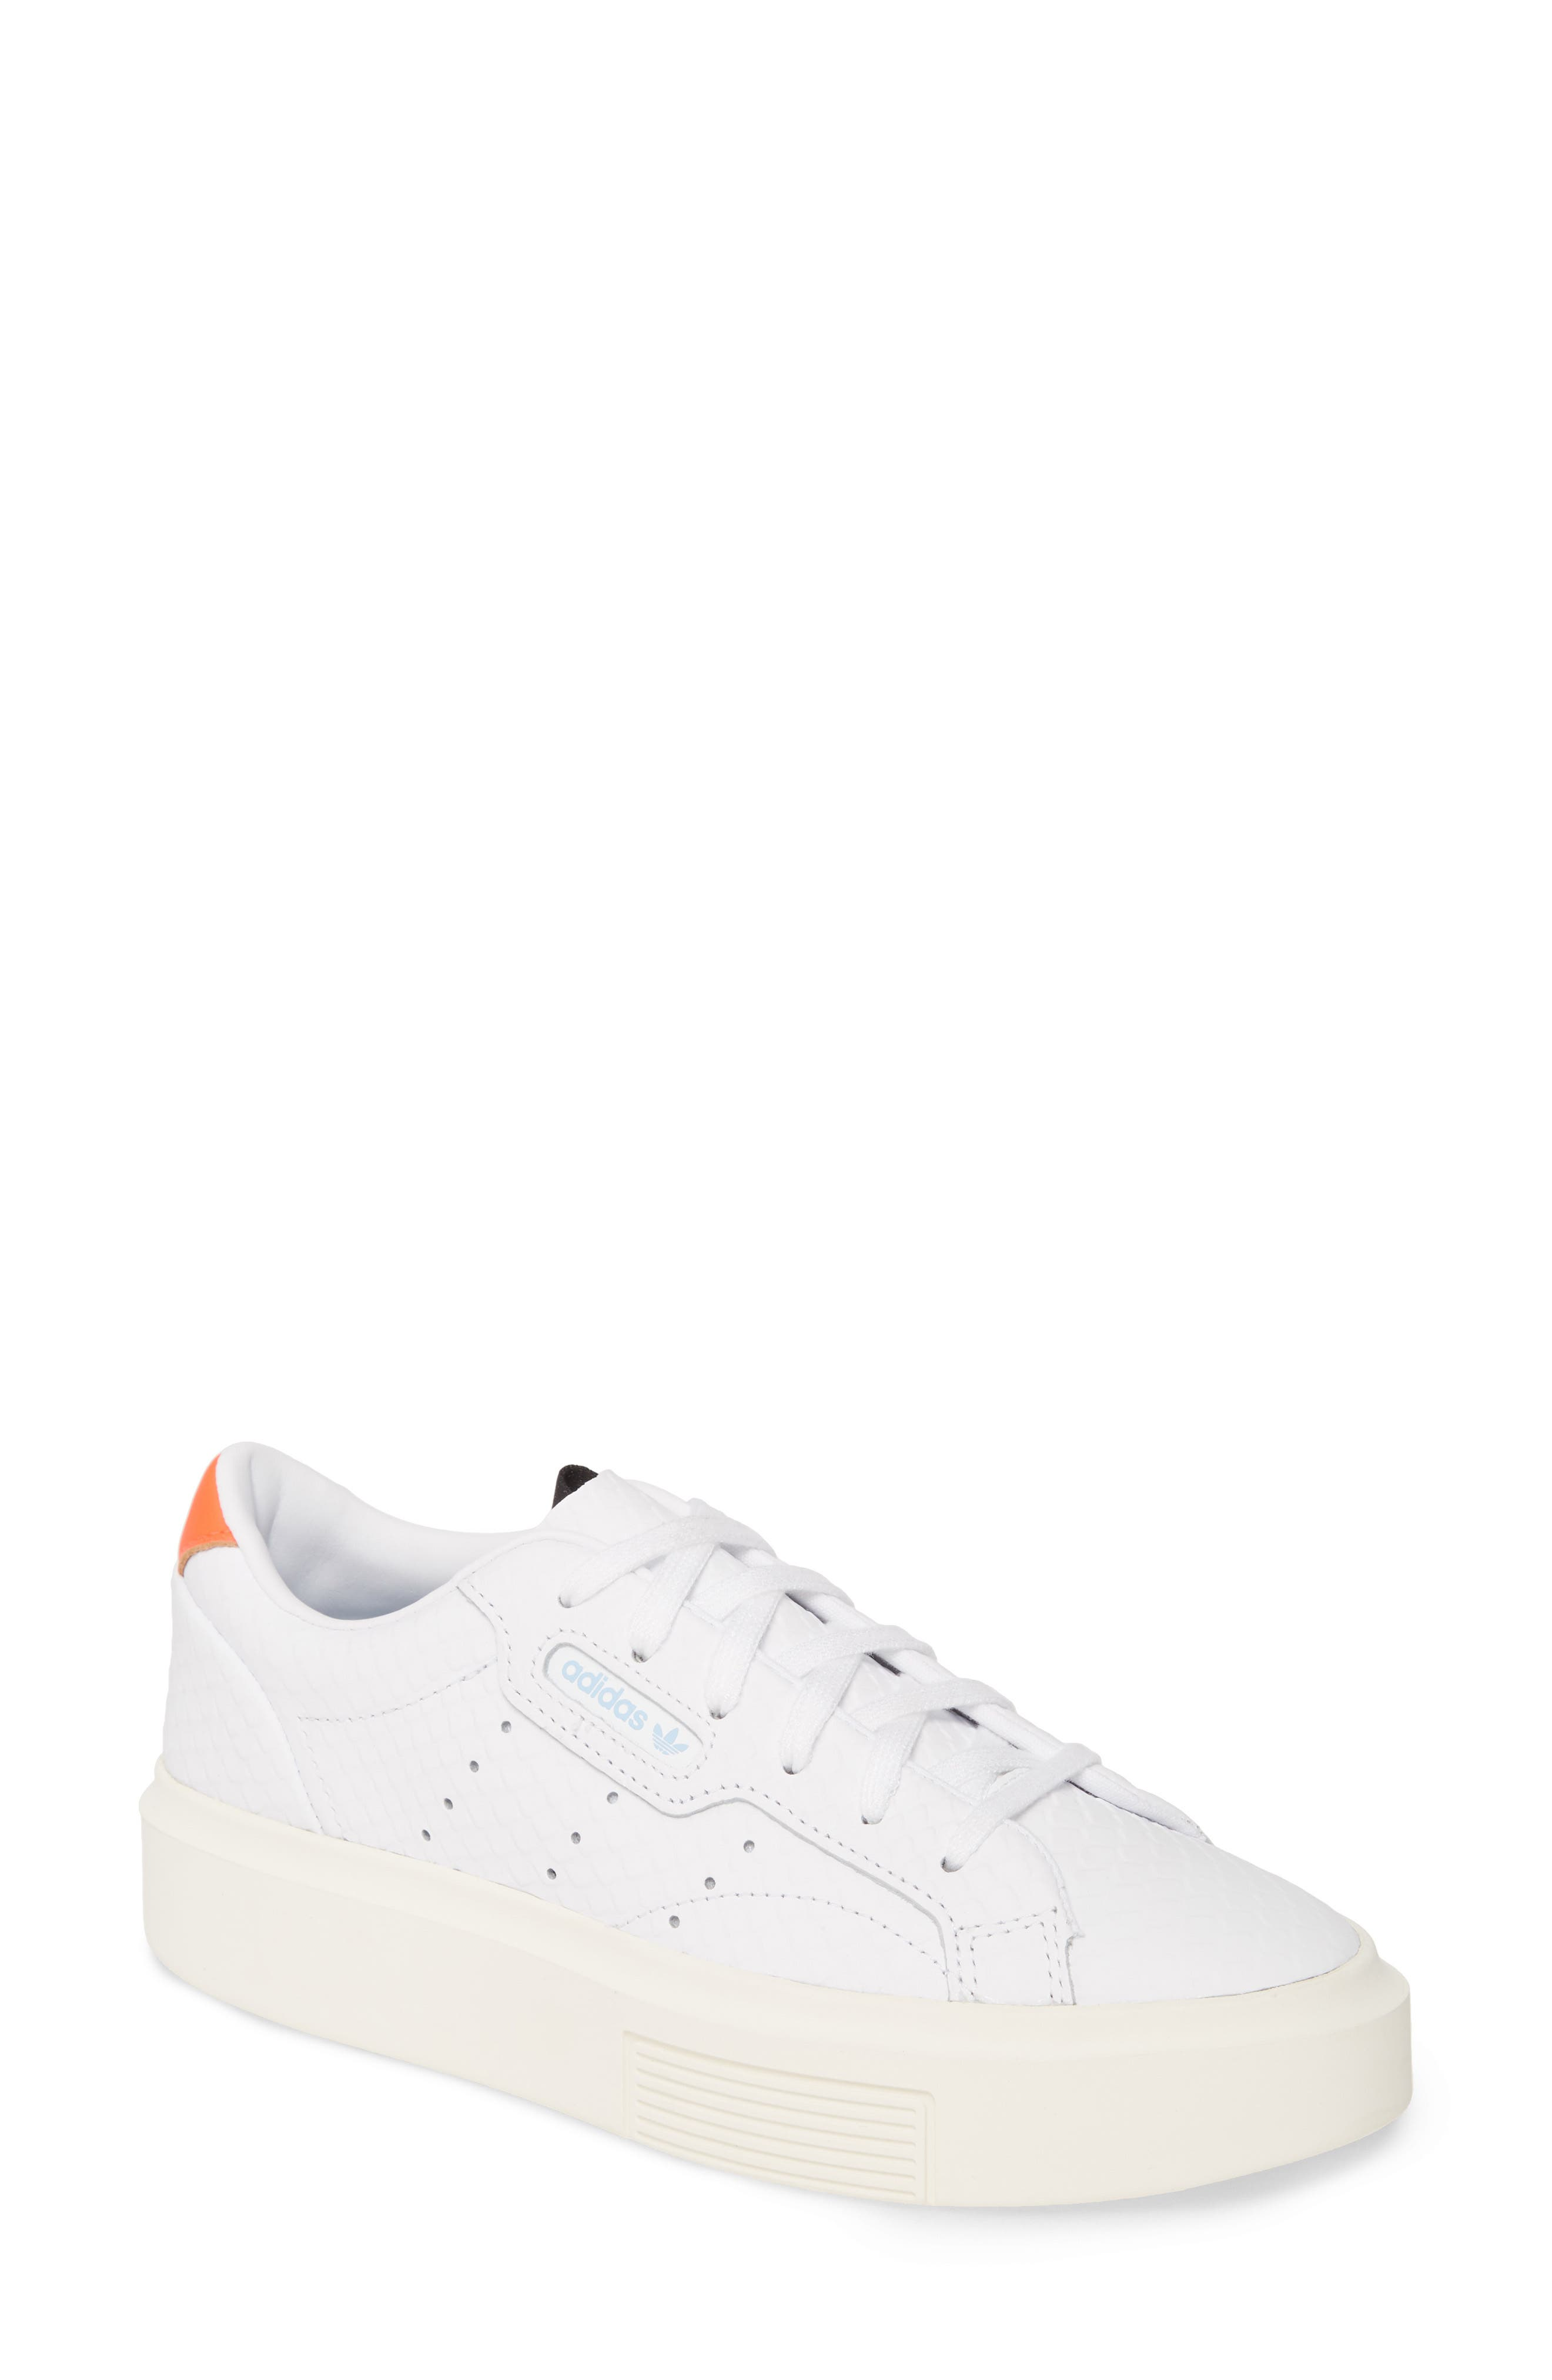 adidas Originals Womens Flashback Winter Trainers Crystal WhiteCrystal WhiteFootwear White